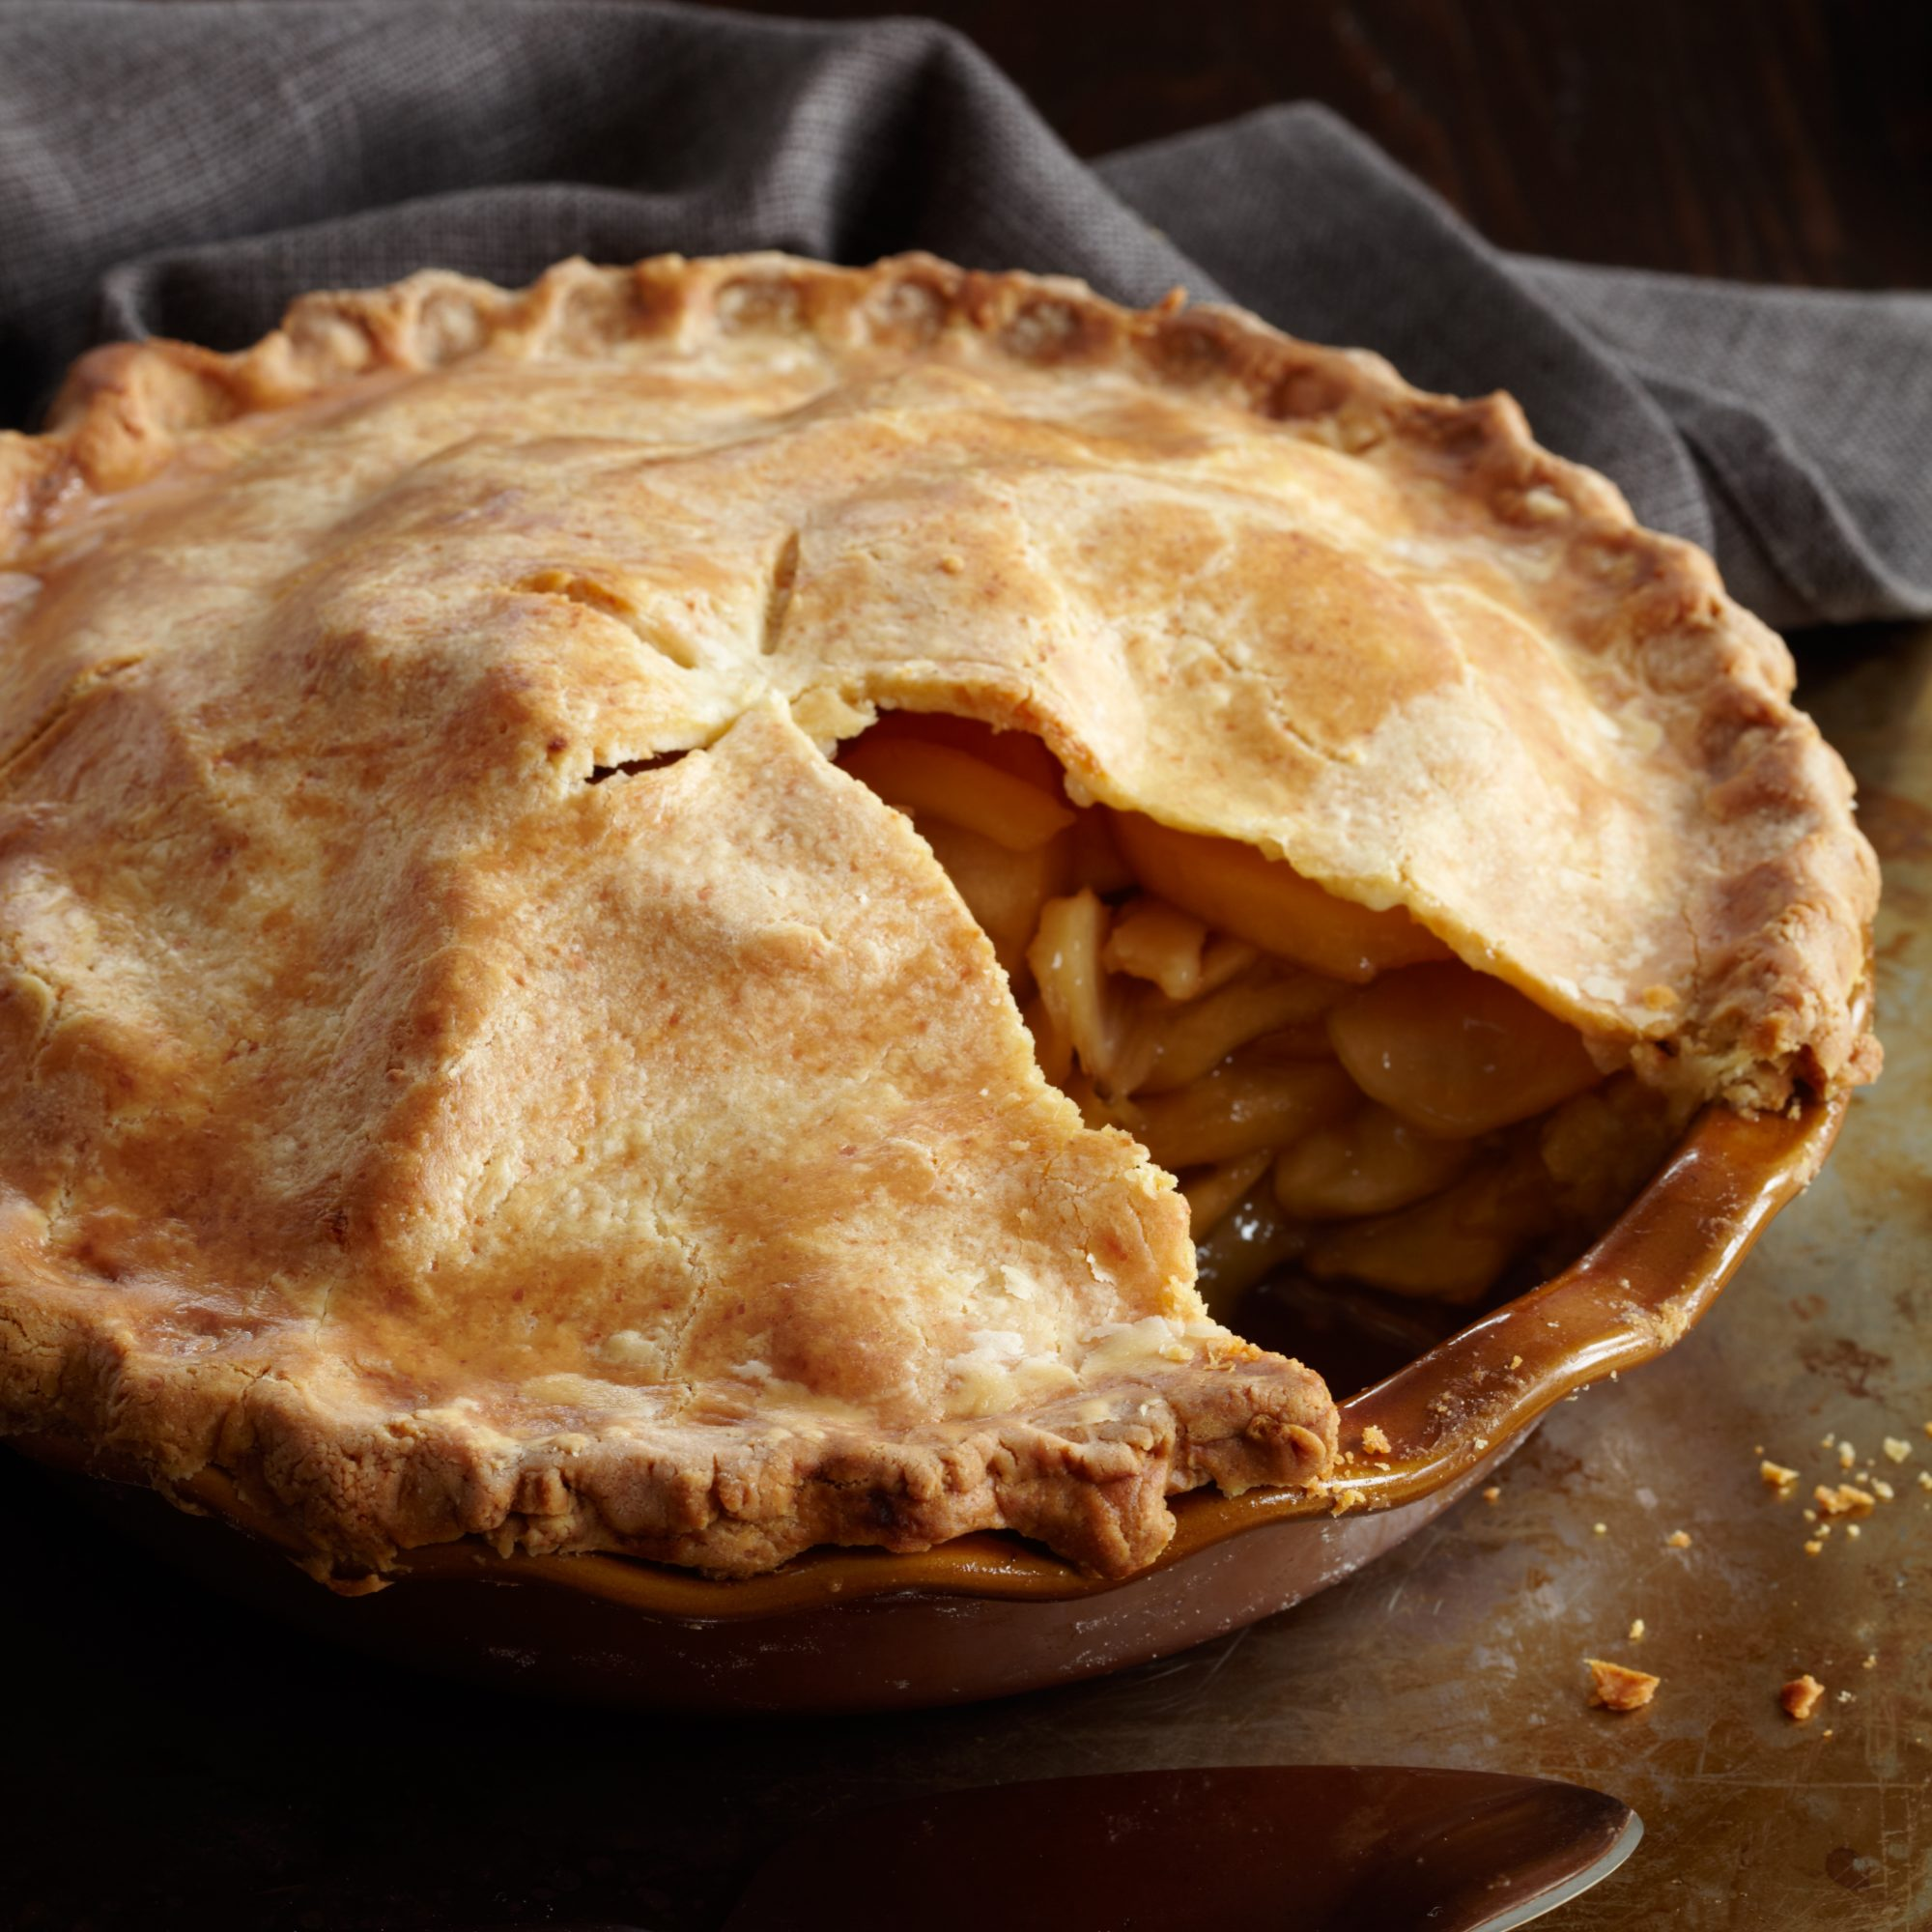 201009-r-apple-cheddar-pie.jpg